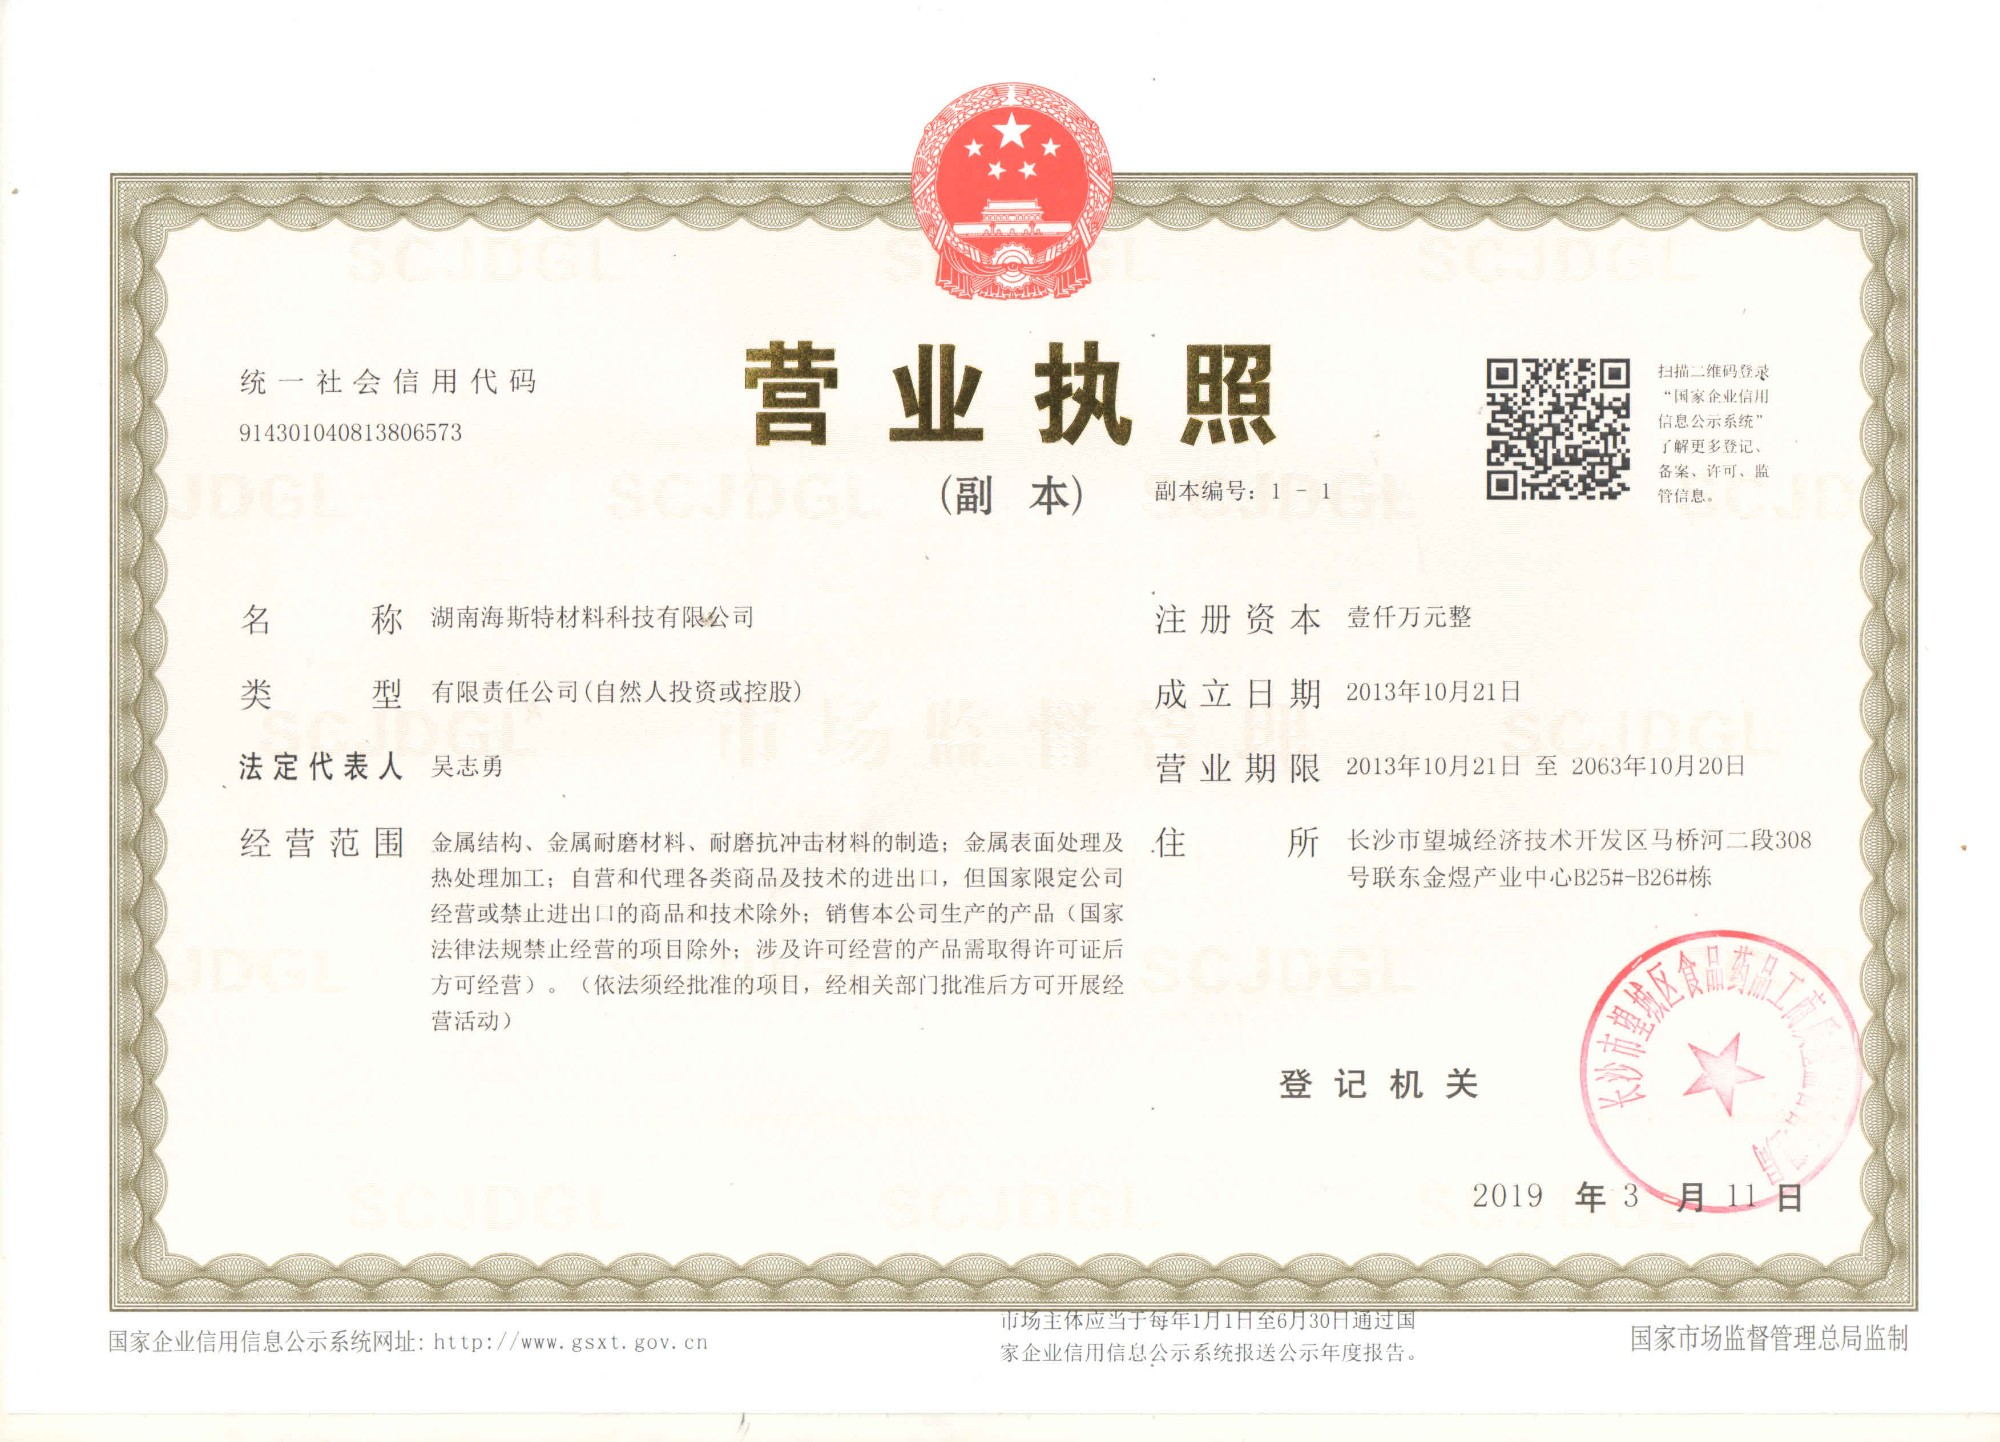 New business license